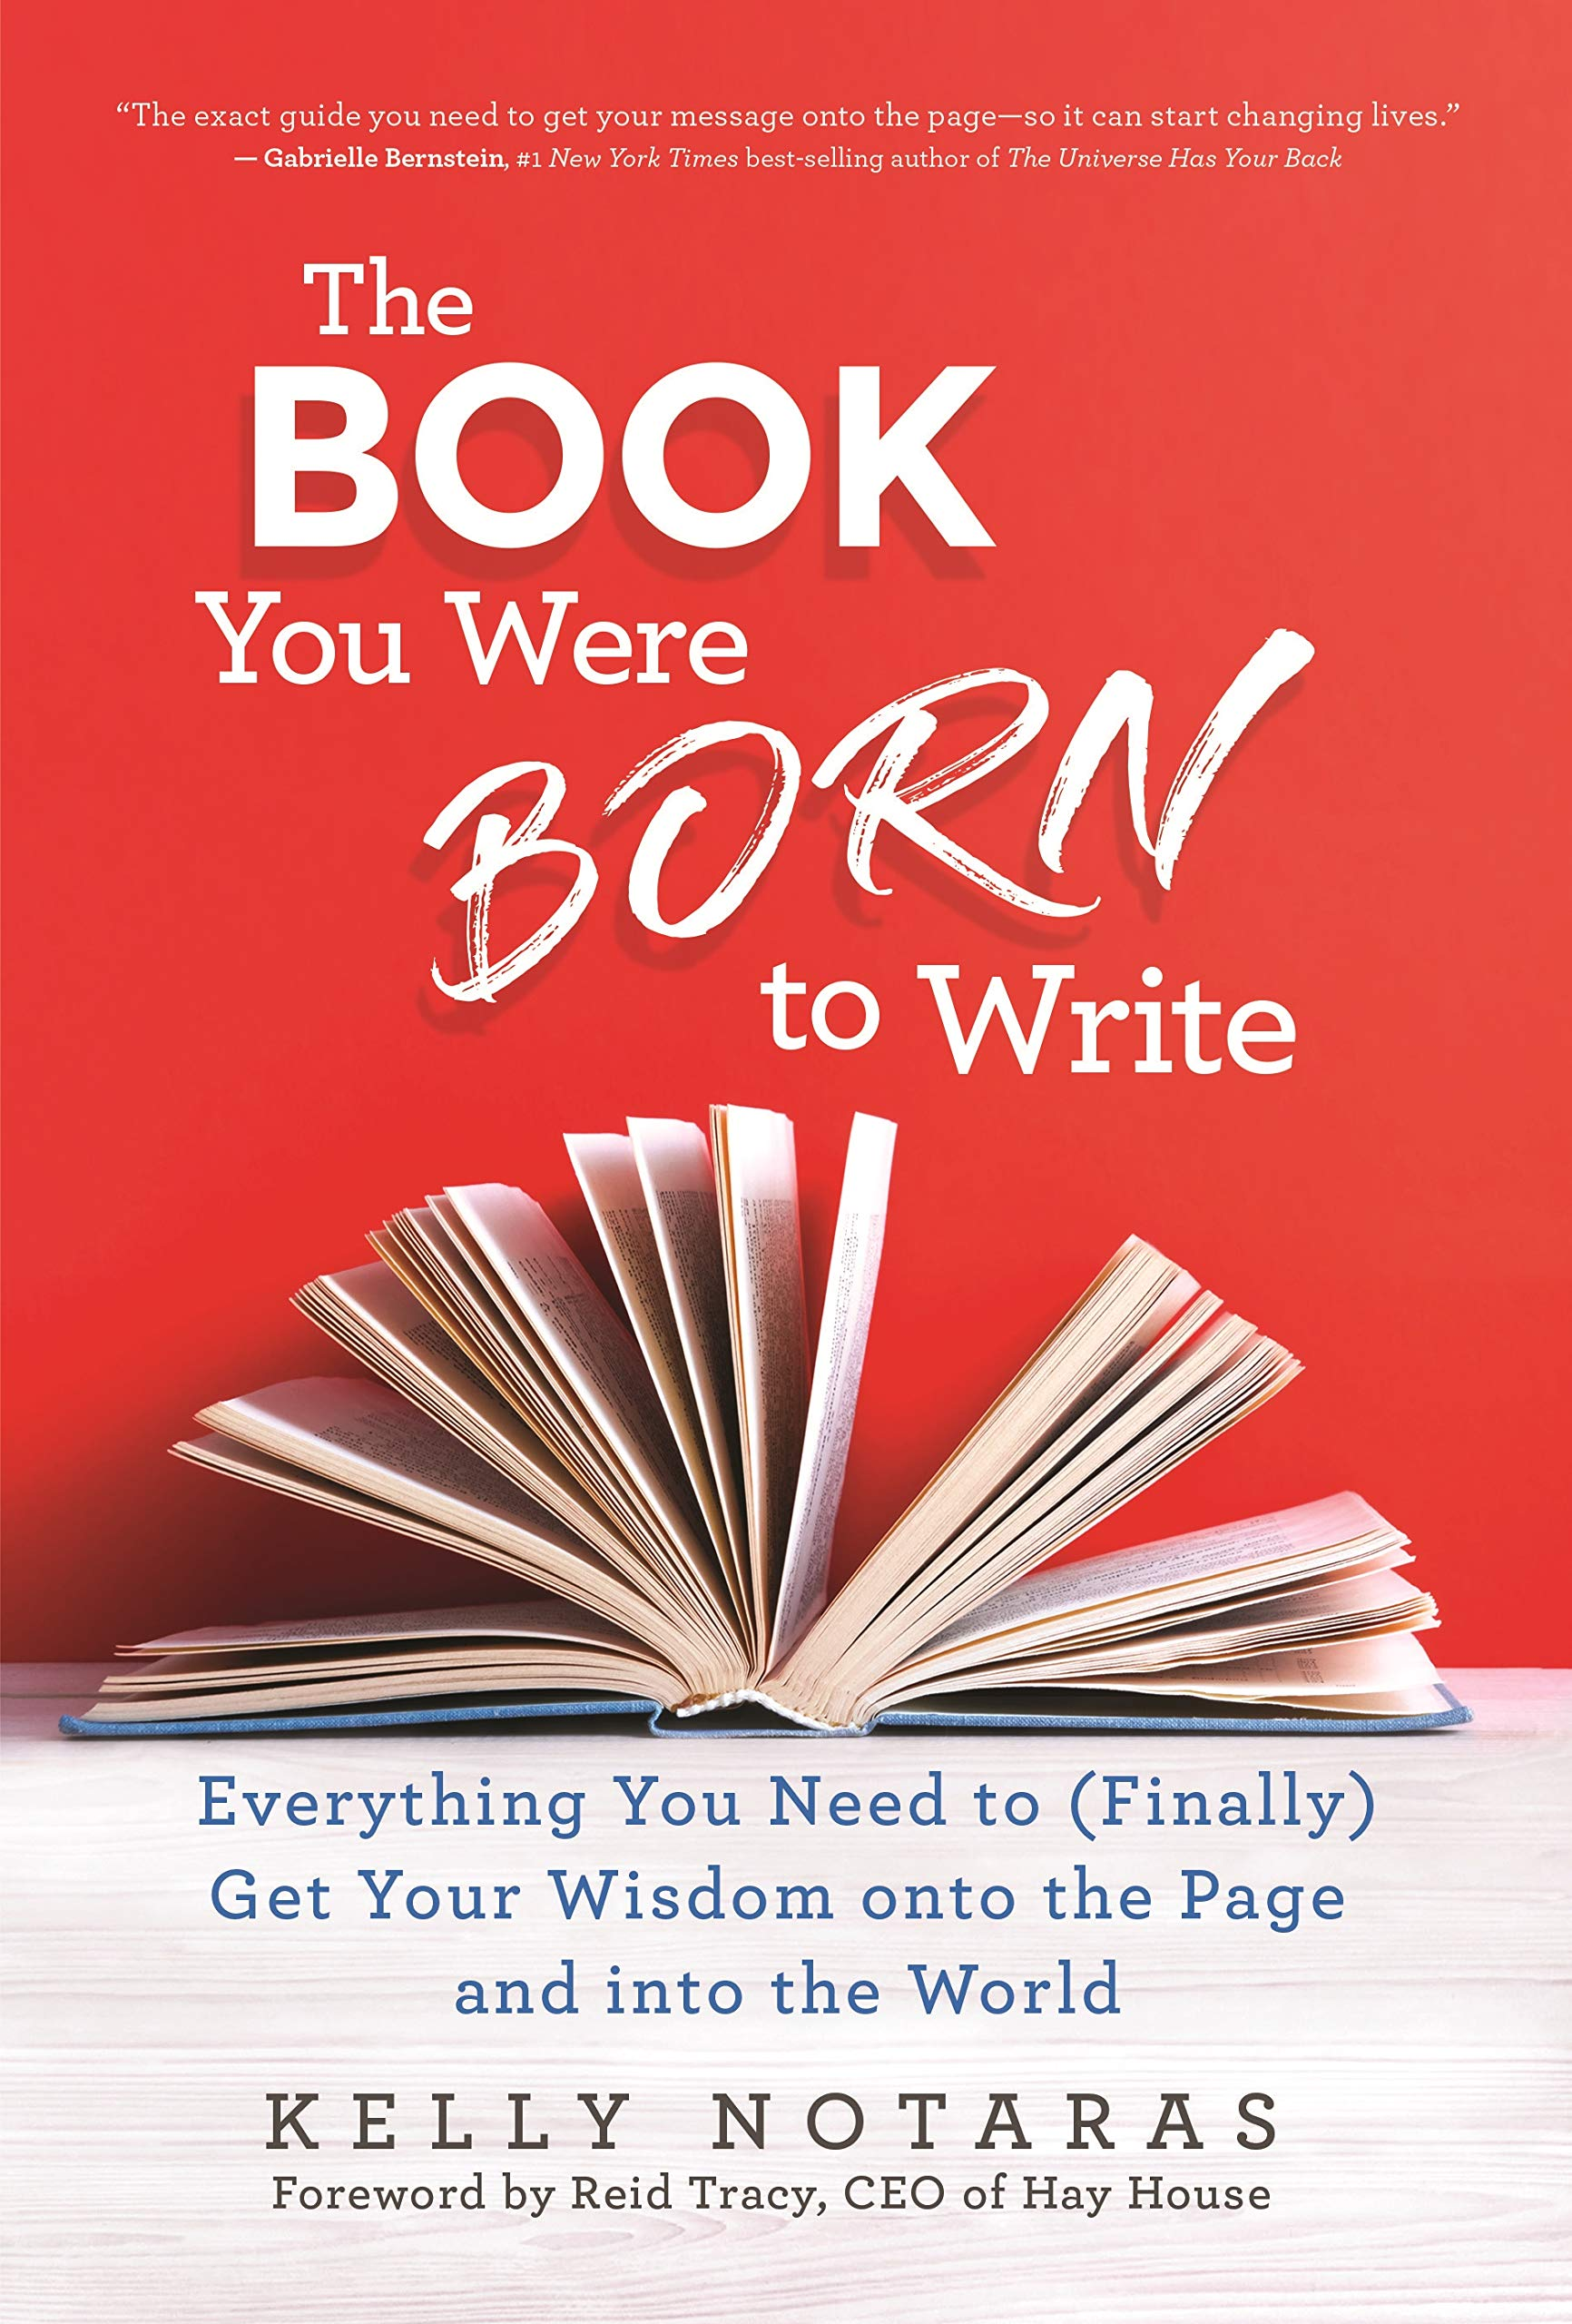 The Book You Were Born to Write: Everything You Need to (Finally) Get Your Wisdom onto the Page and into the World Hardcover – November 13, 2018 Kelly Notaras Hay House Inc. 1401955606 AUTHORSHIP